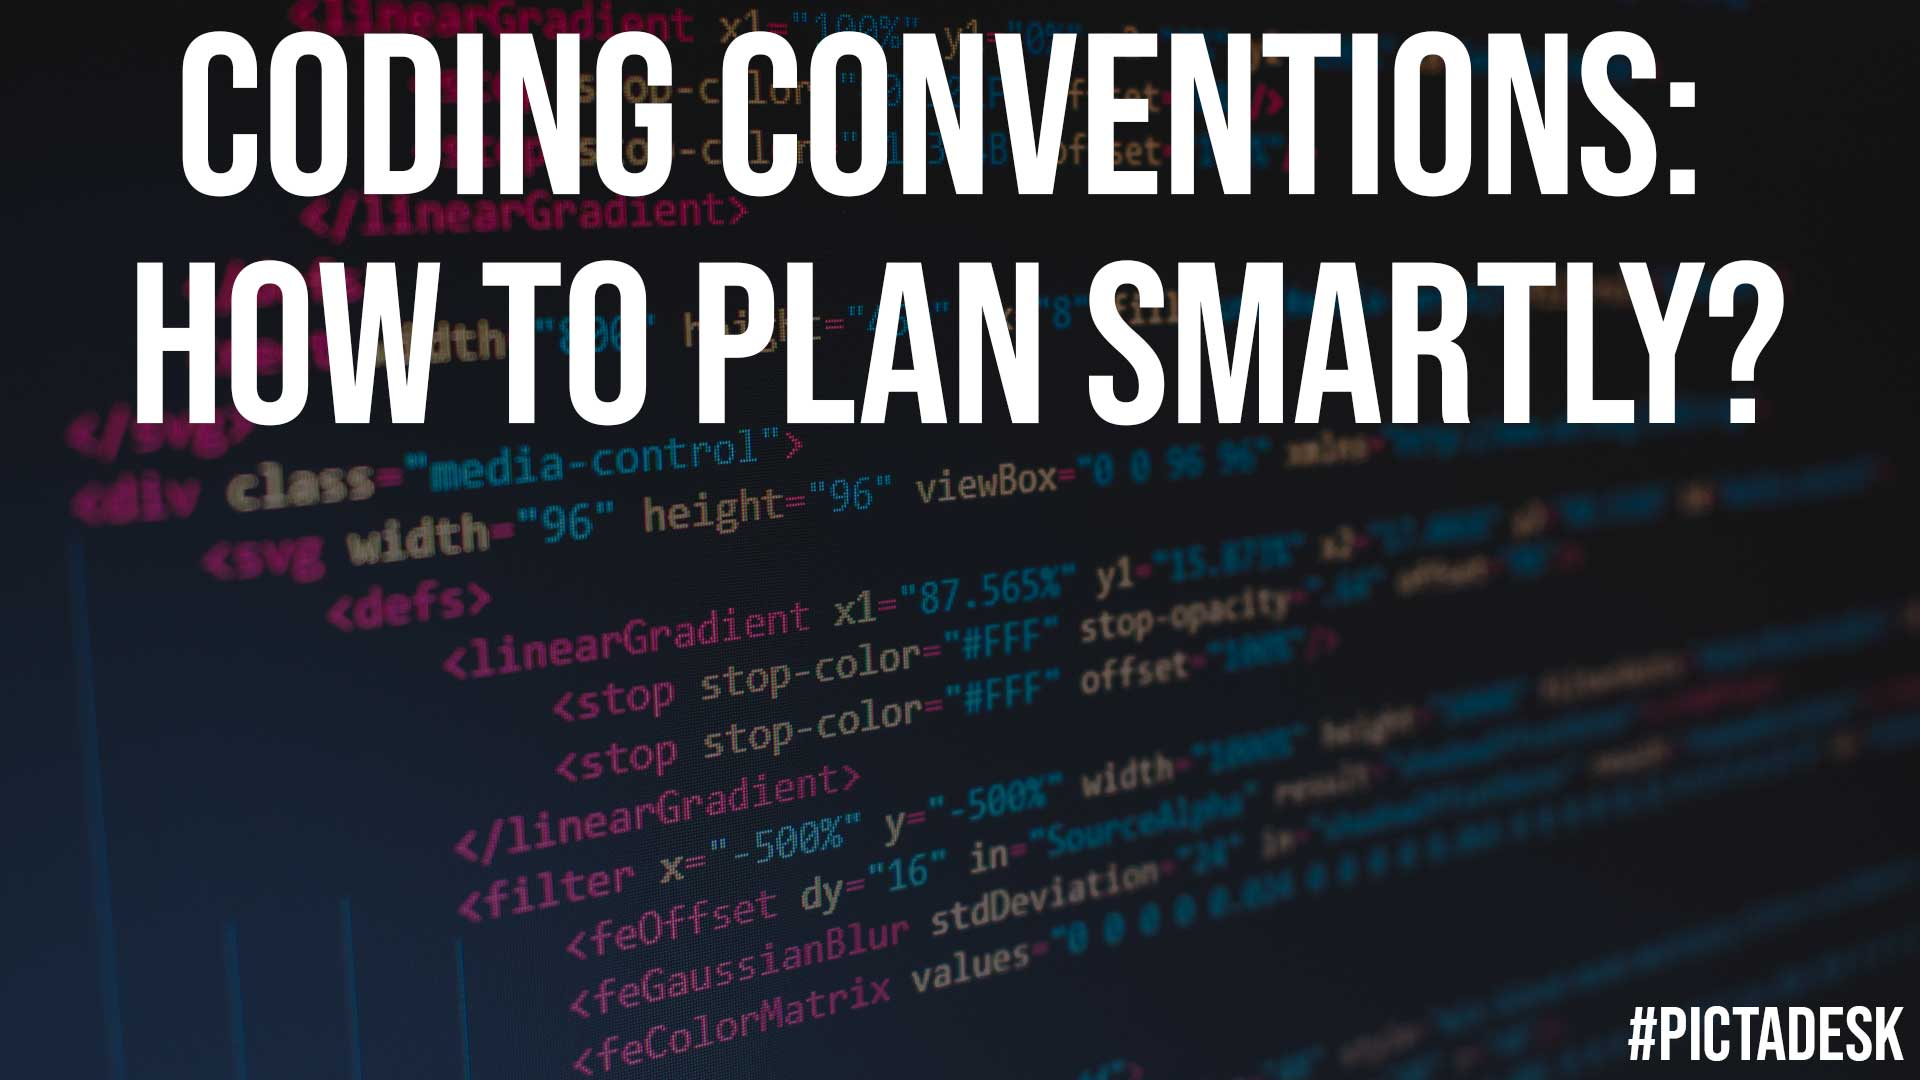 Coding Conventions How to Plan Smartly